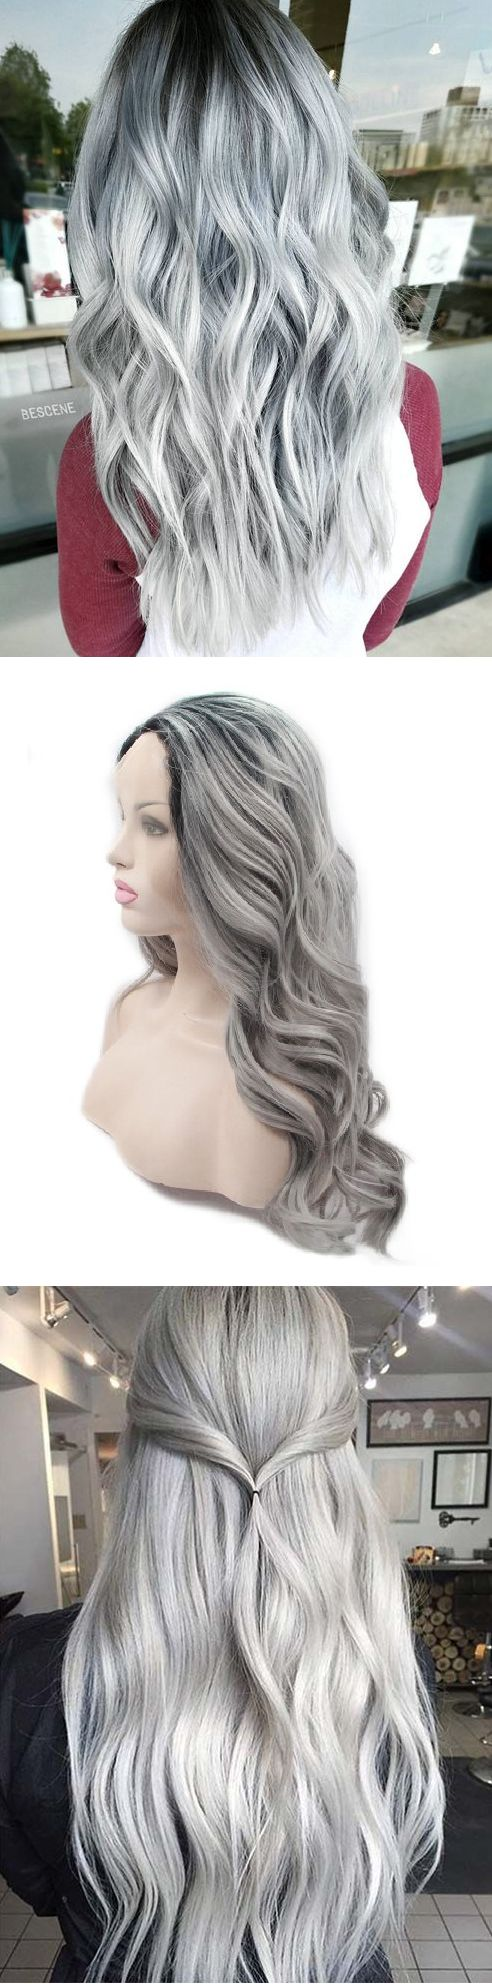 Only $33.89. K'ryssma Ombre Gray 2 Tones Synthetic Lace Front Wig Dark Roots. Buy yours and Celebrate with Savings!